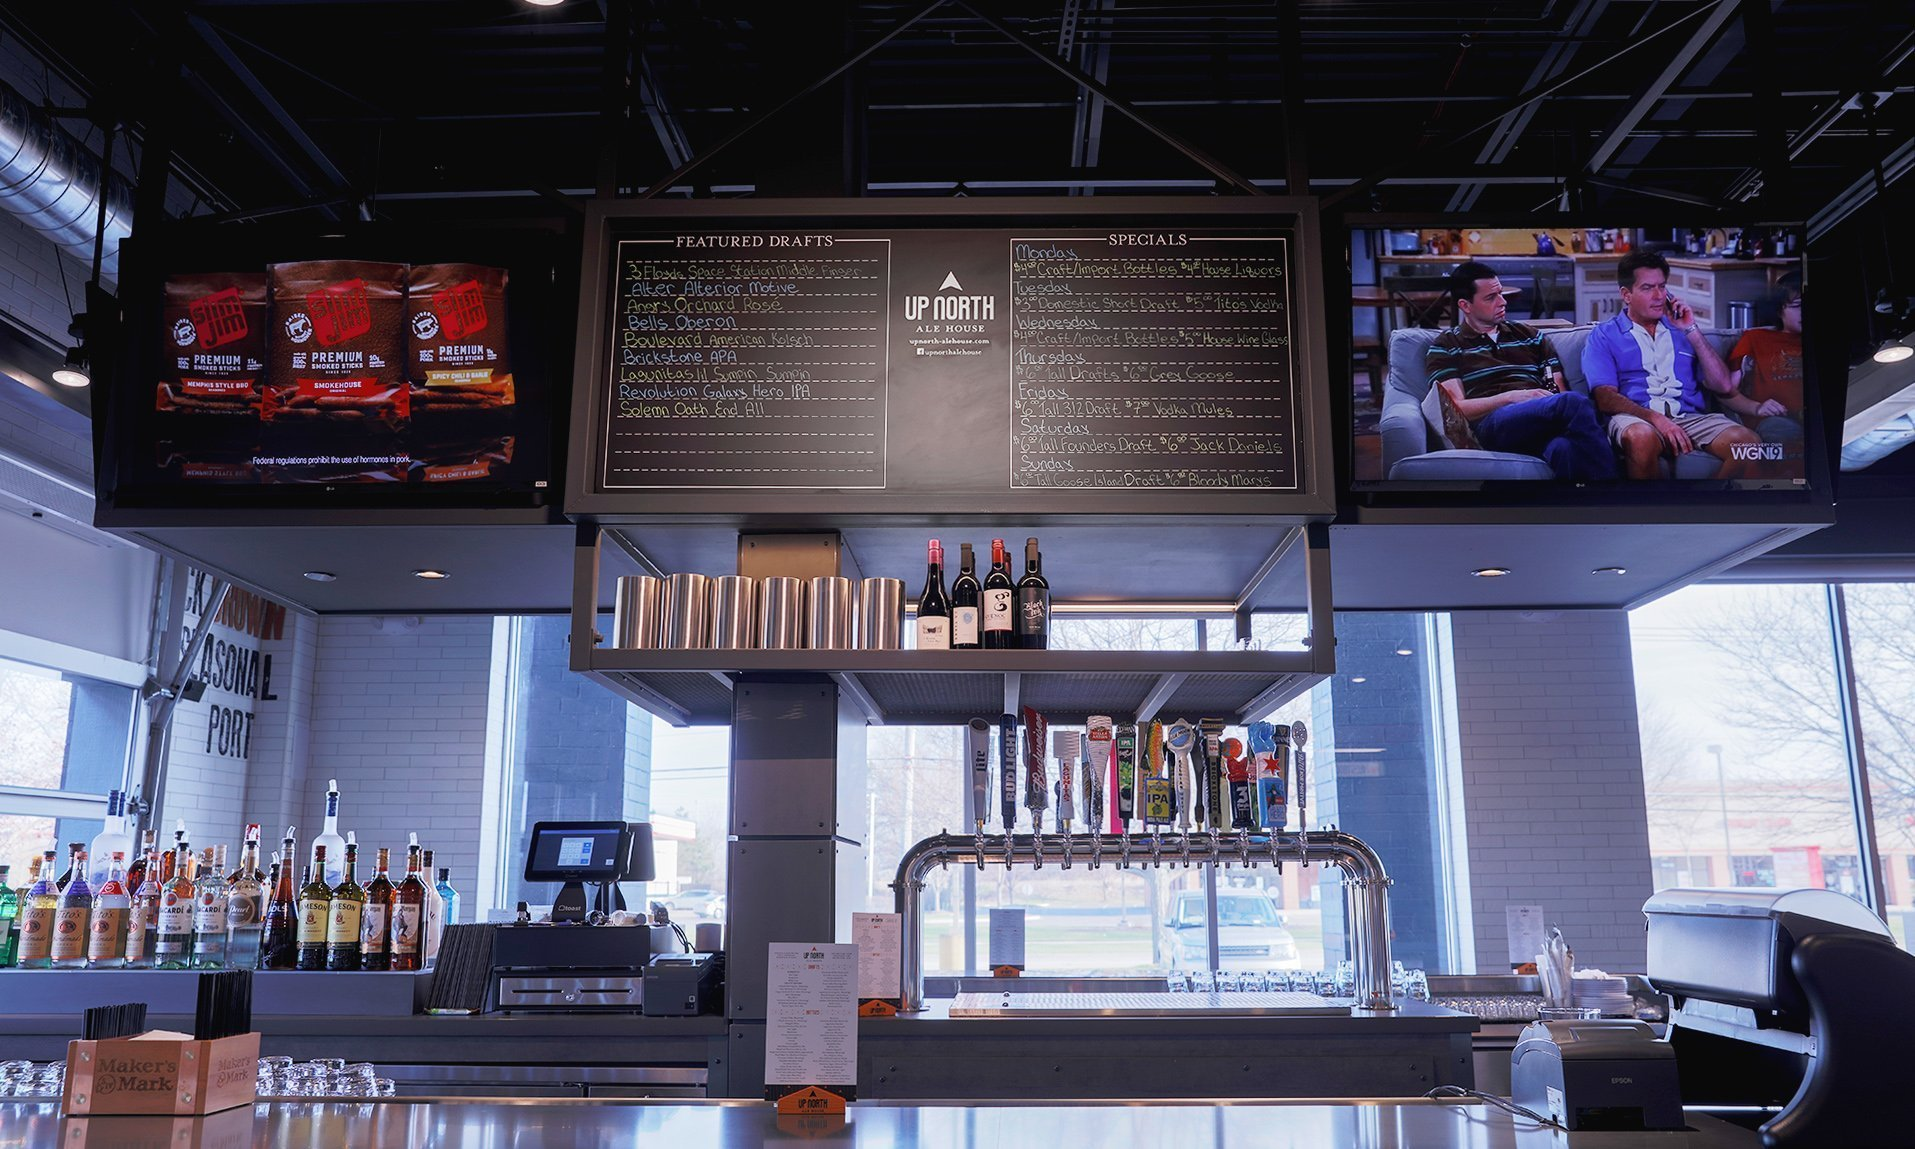 Close up of bar island featuring the chalkboard menu and two televisions along with the beer taps